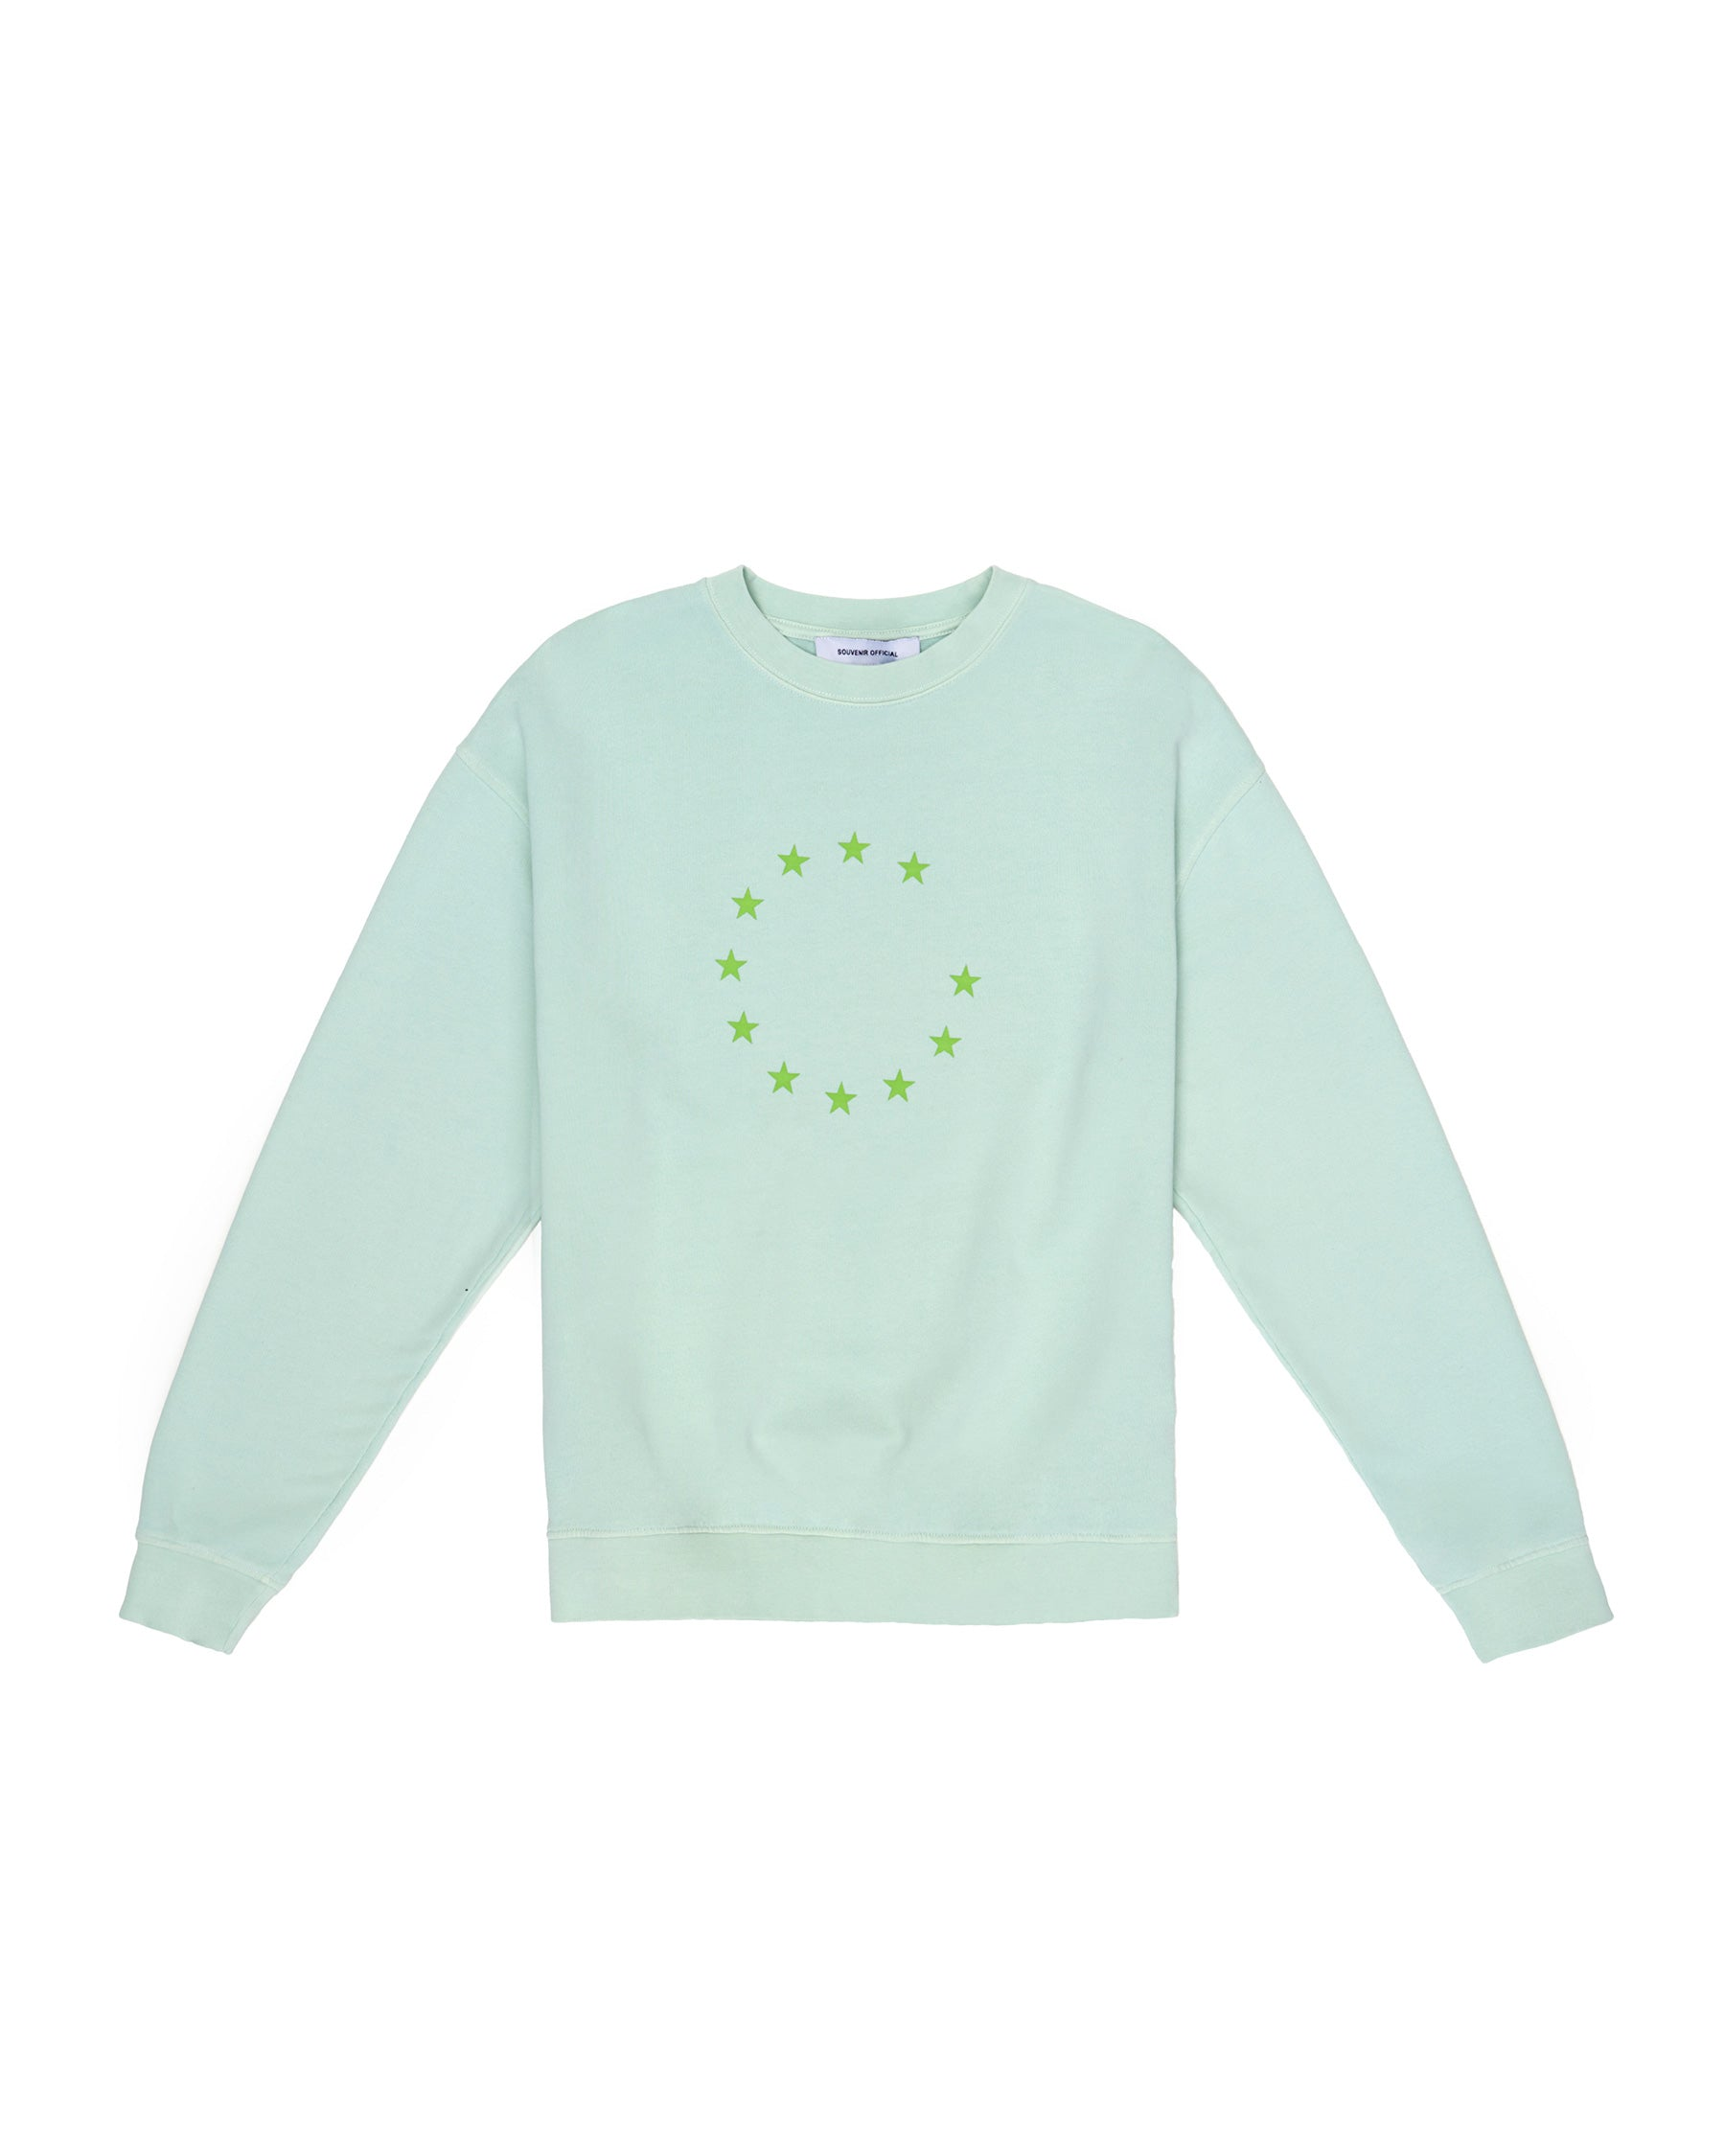 PROTECT PEACE CREWNECK MISTY JADE